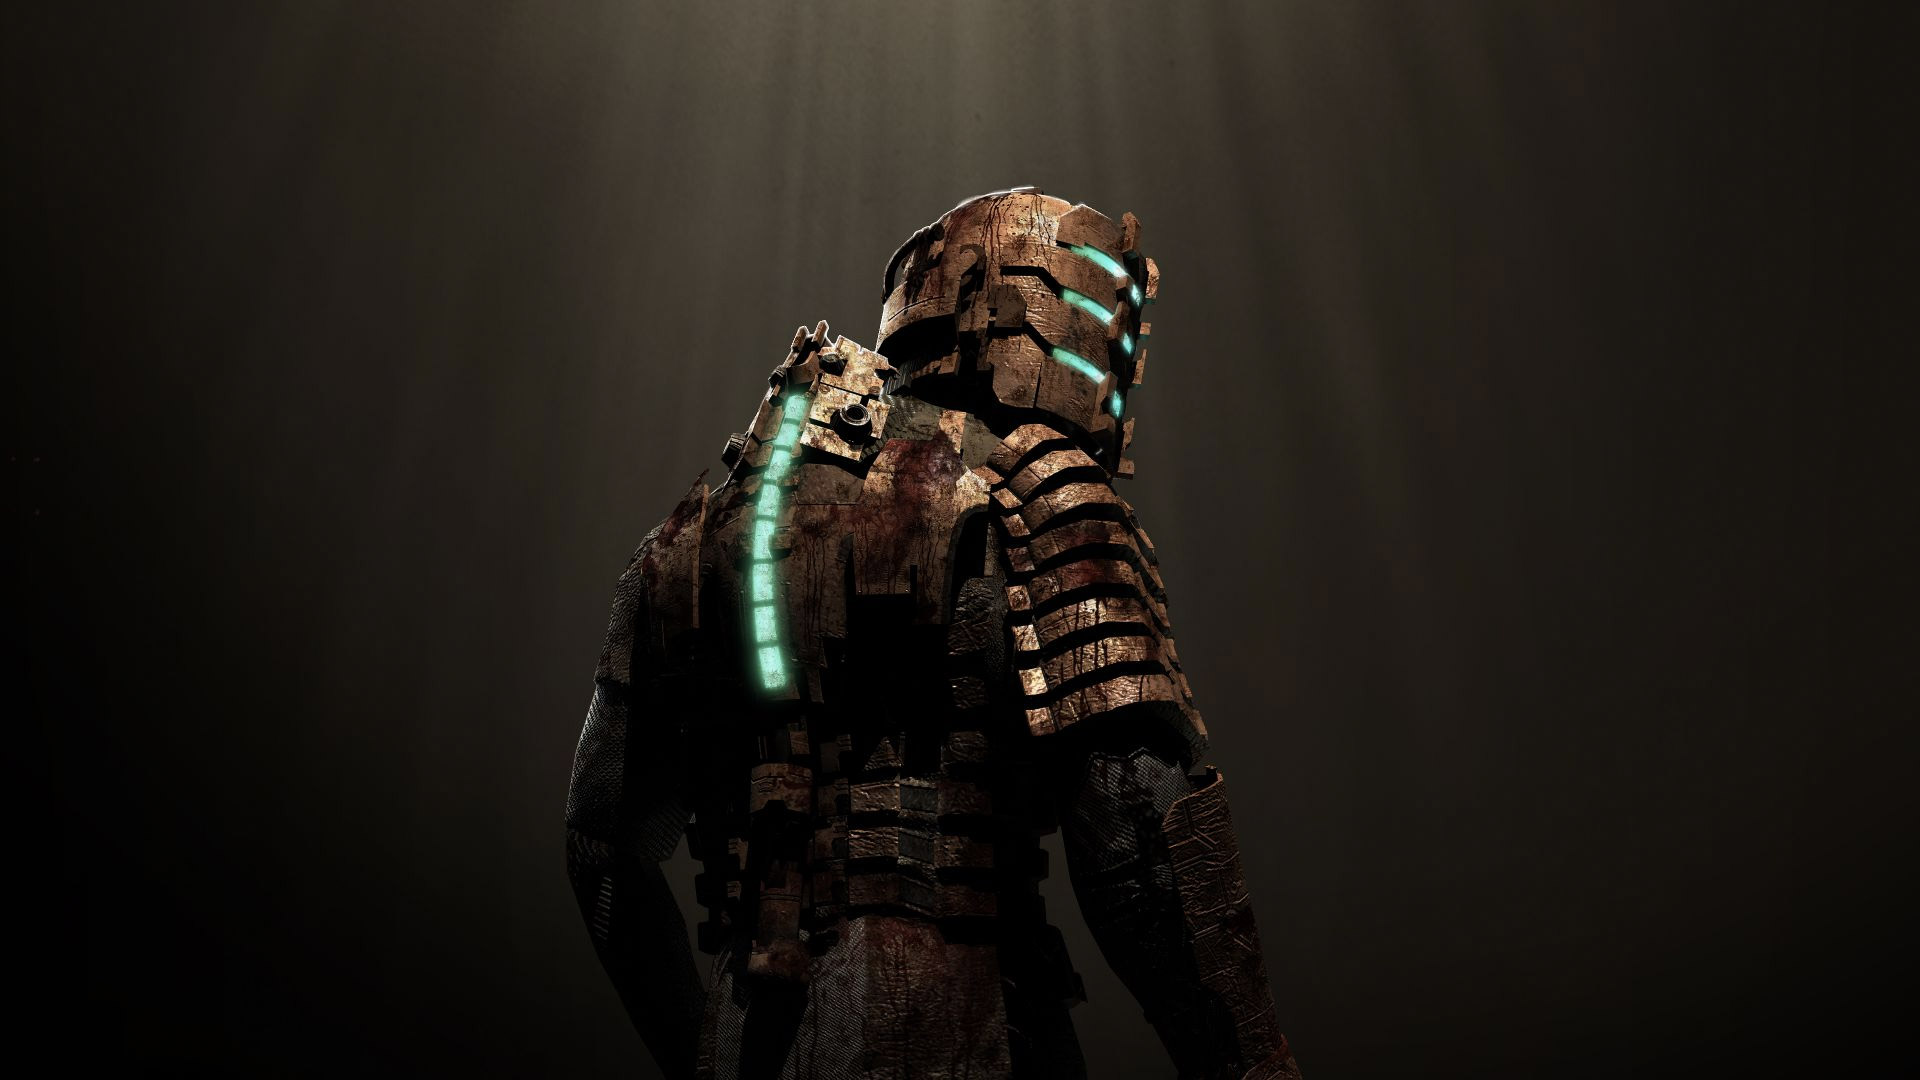 Get a free copy of Dead Space on PC